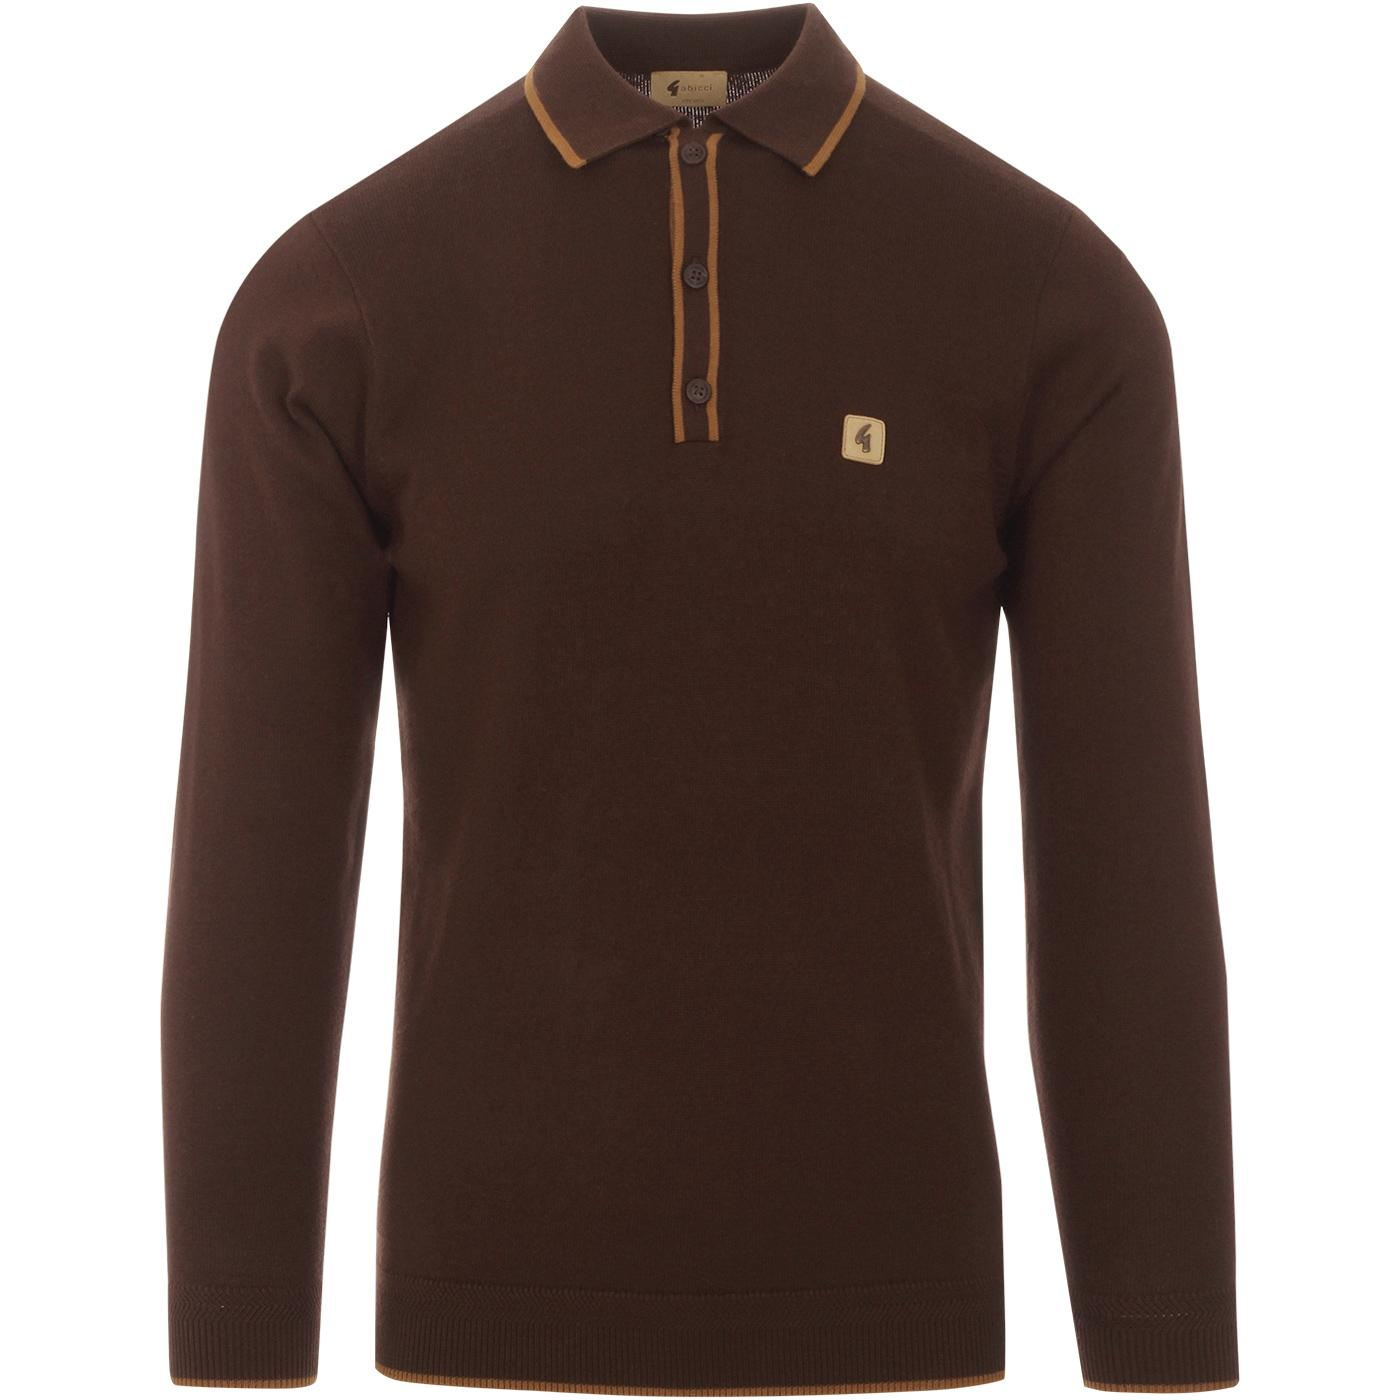 Lineker GABICCI VINTAGE Mod Knit Tipped Polo COCOA